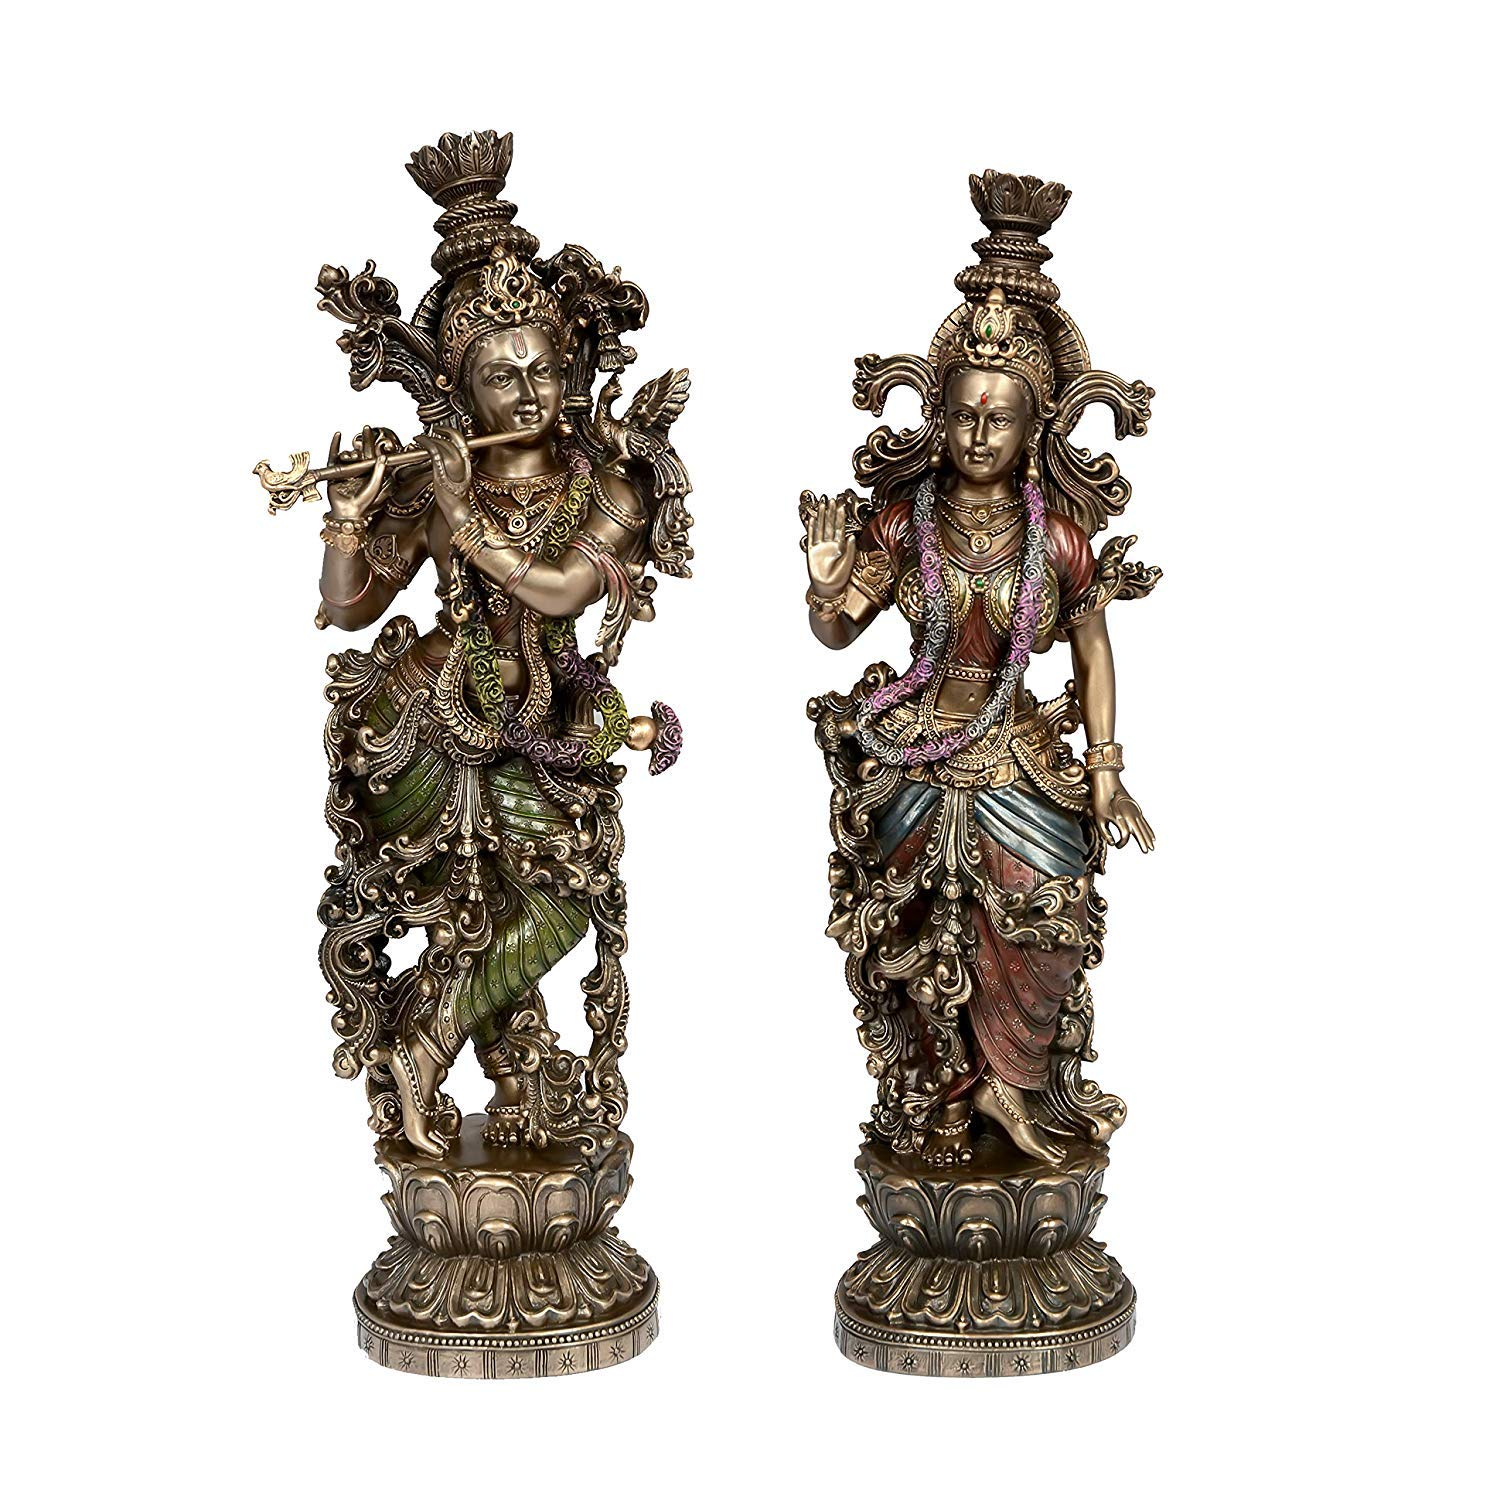 AONA Large Radha Krishna Idol - Statue Showpiece Murti for Home